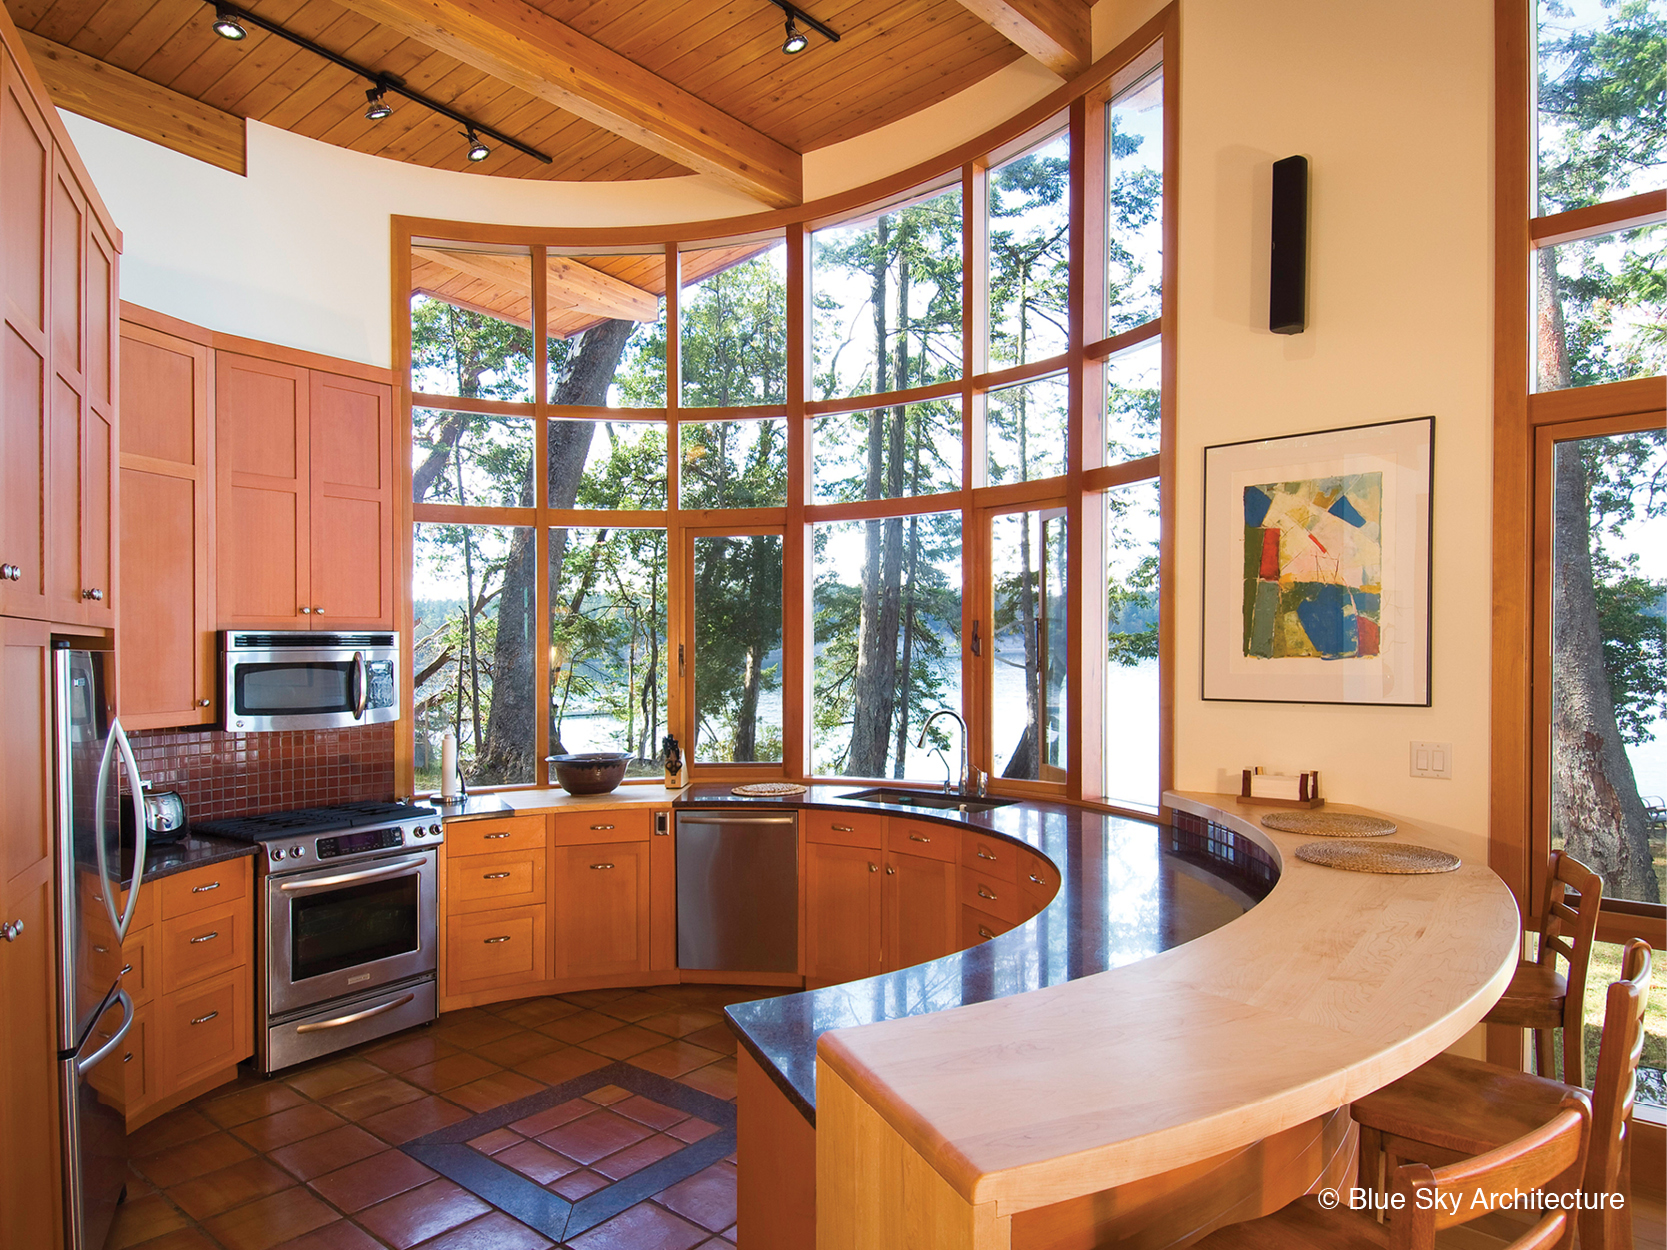 Circular countertops in the Booklovers House kitchen